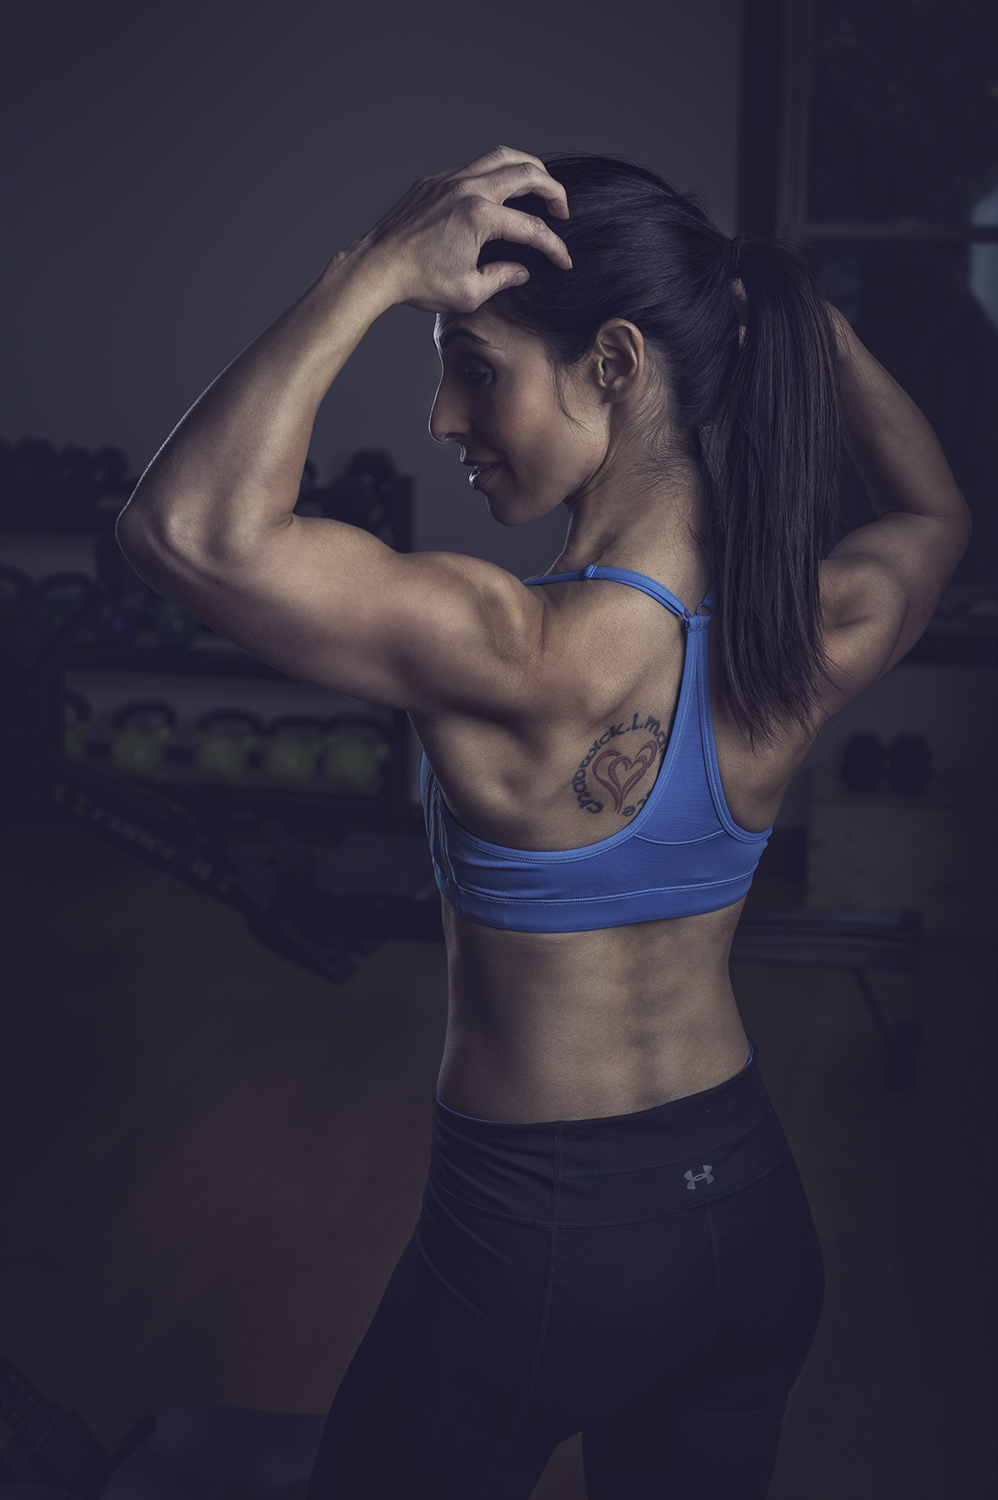 Toronto Hamilton Female Fitness Photographer - Marek Michalek.jpg